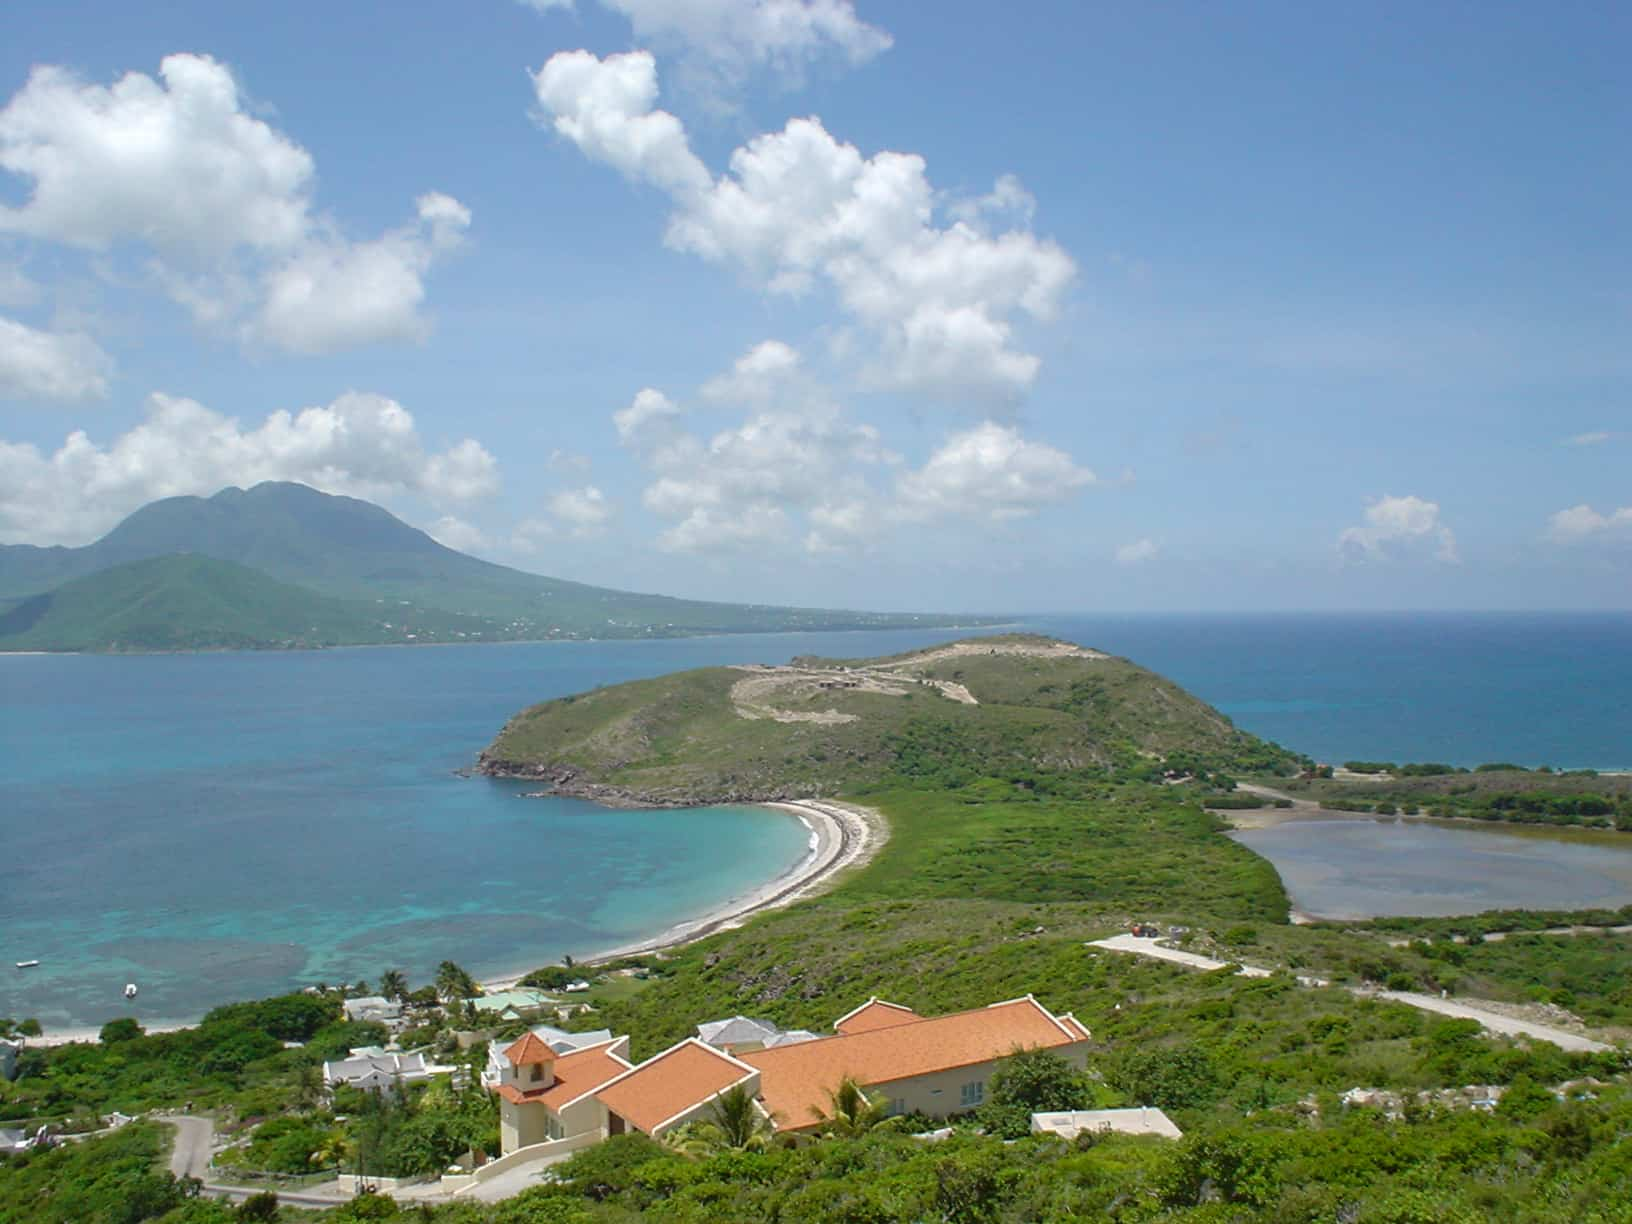 Saint Kitts and Nevis - Smallest Countries in the World for your Next Vacation